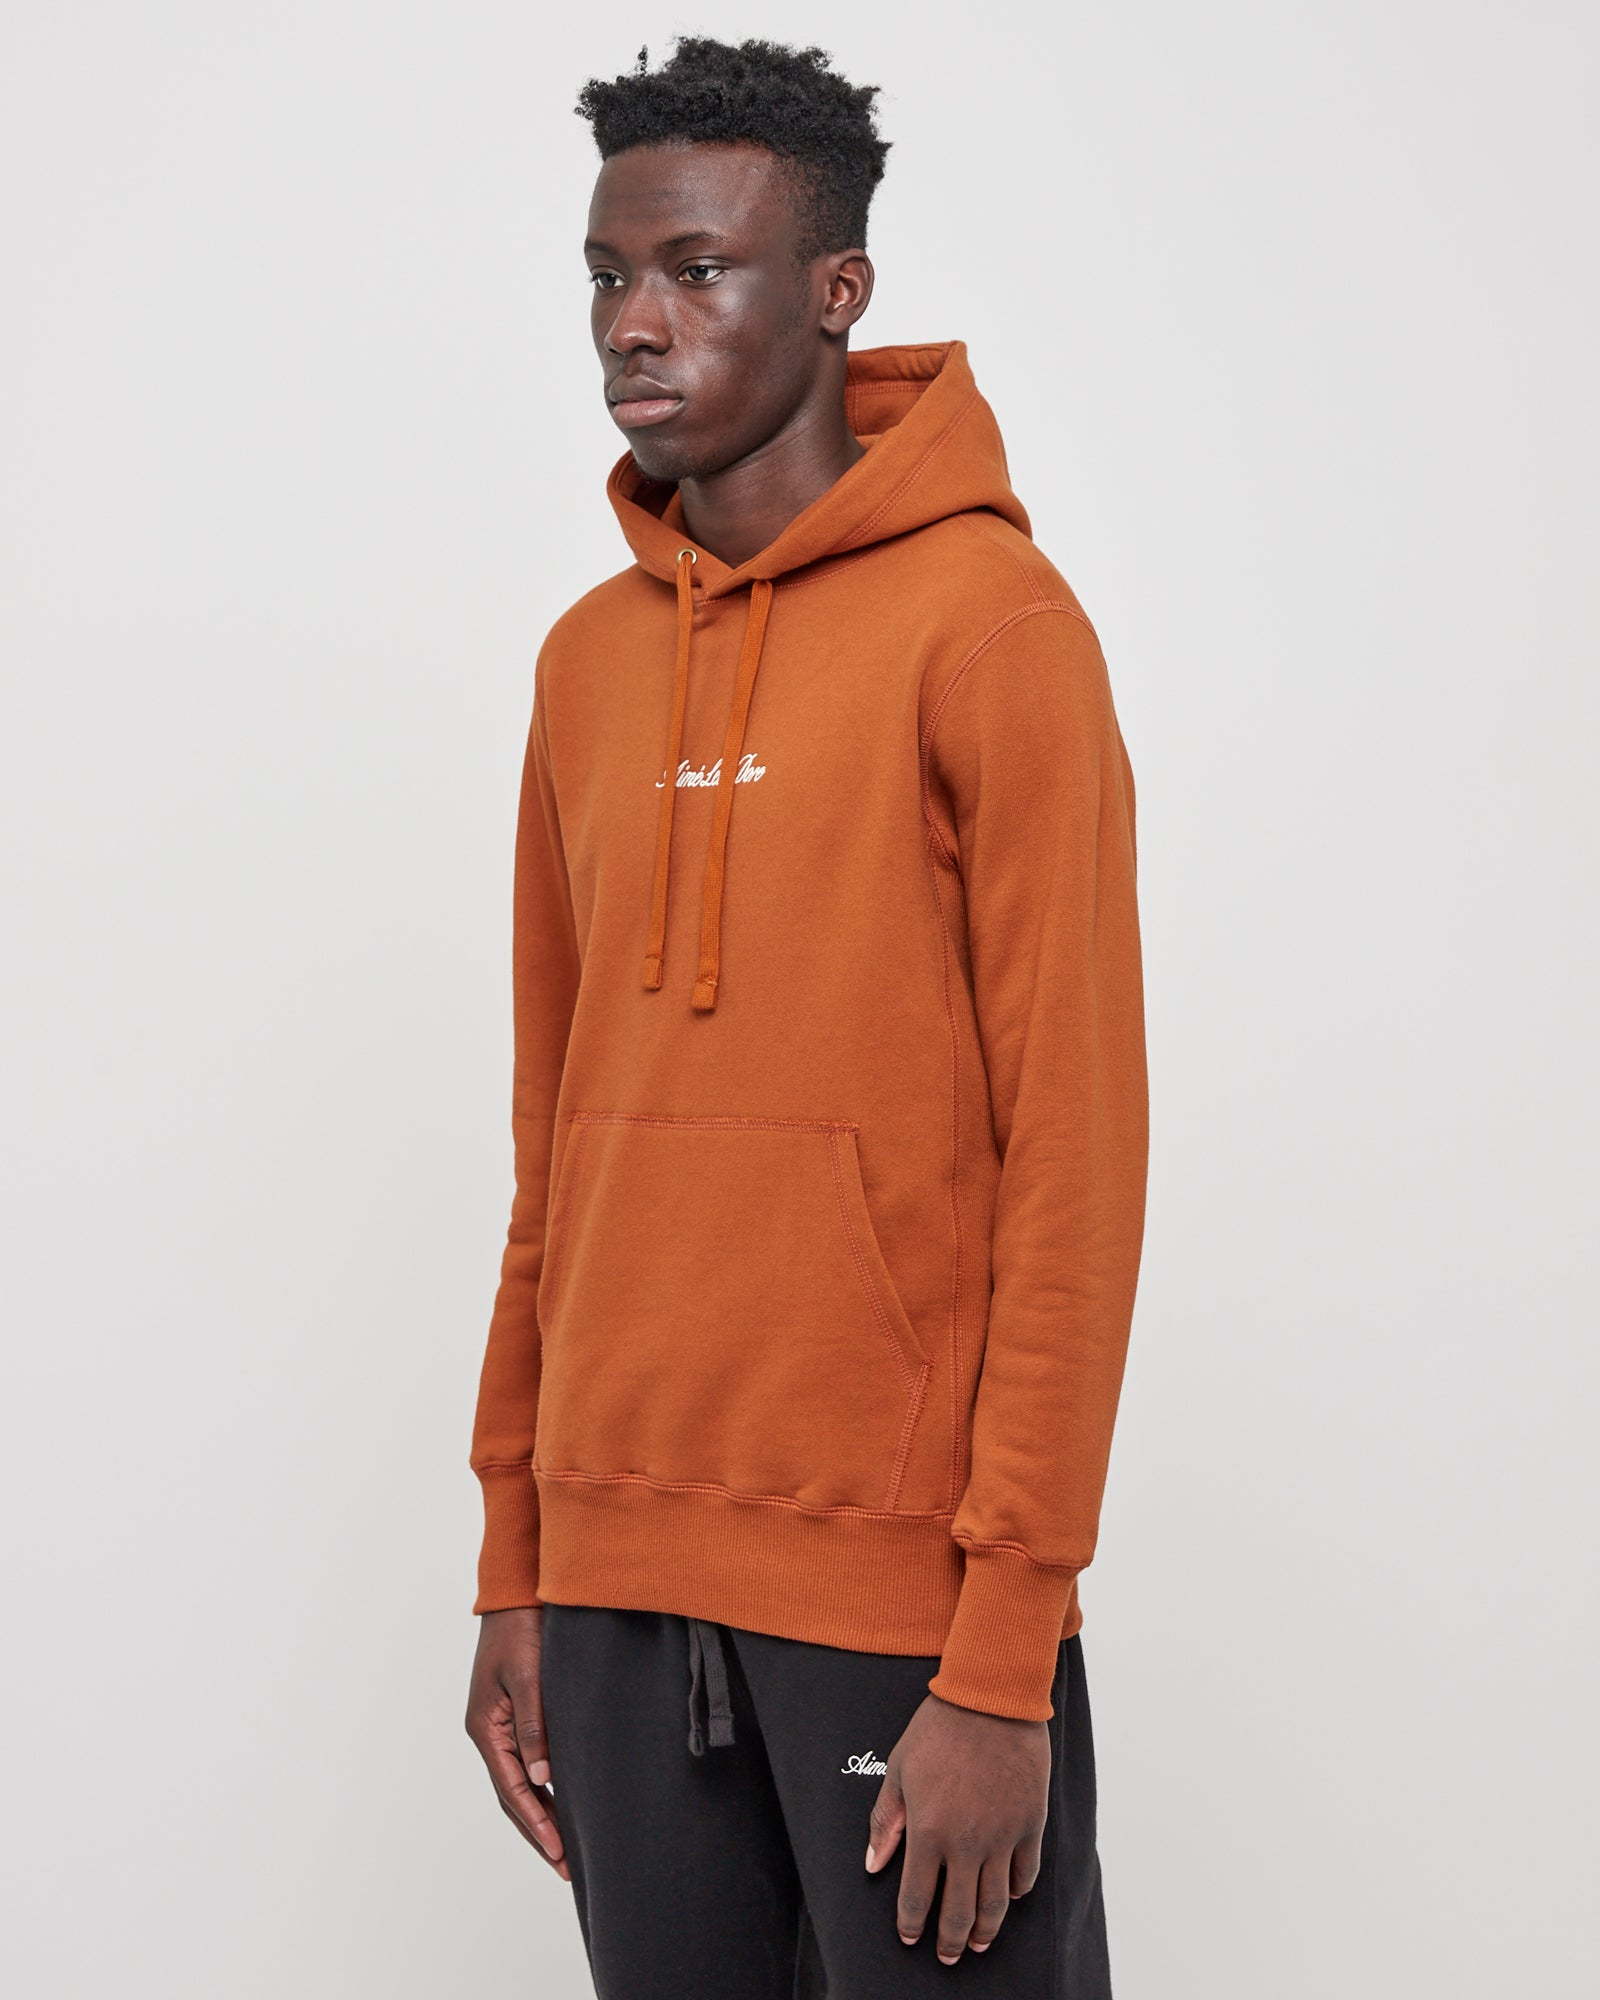 20oz Terry Logo Hoodie in Almond